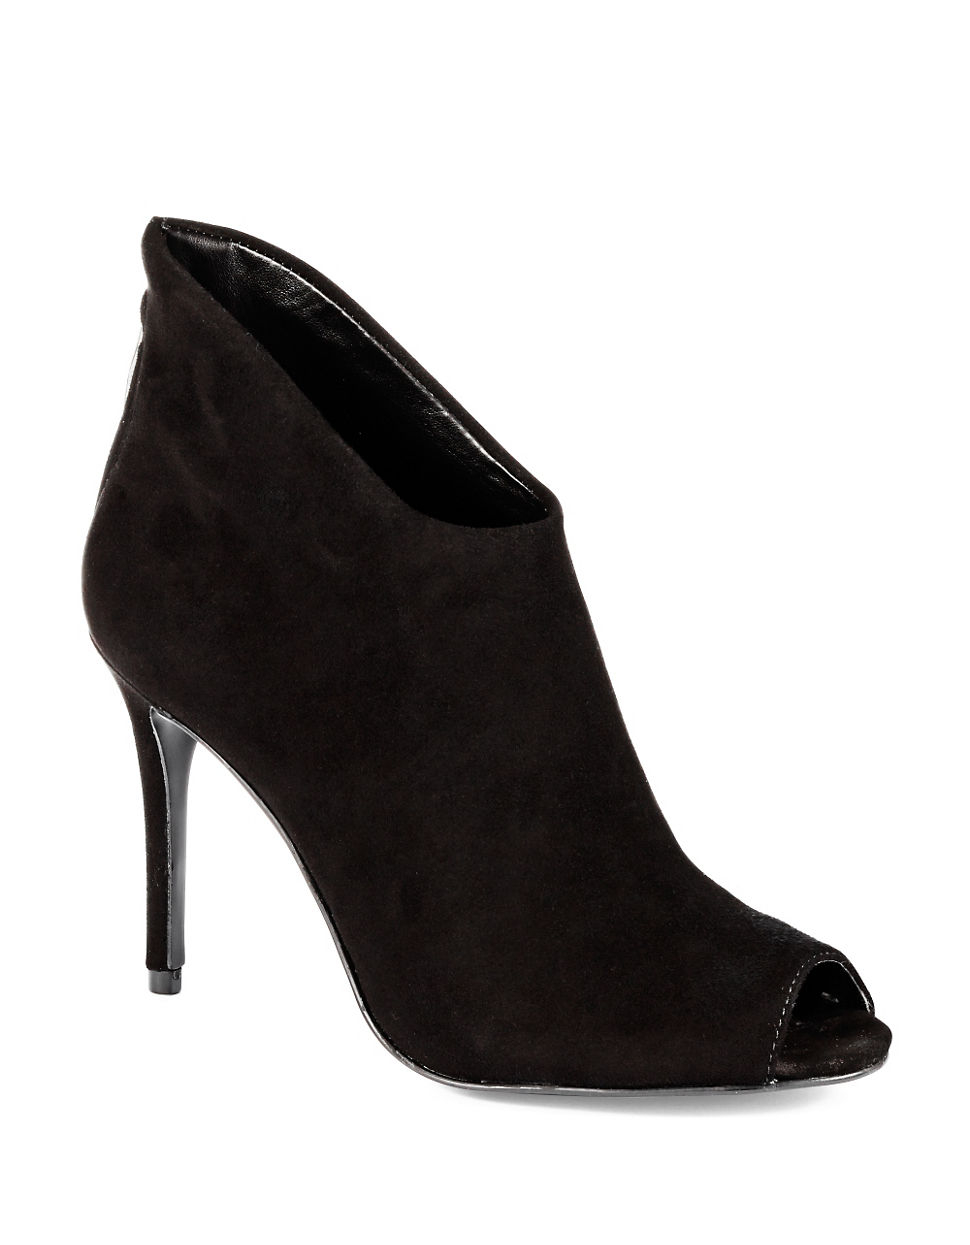 enzo angiolini lovesit suede boot in black lyst